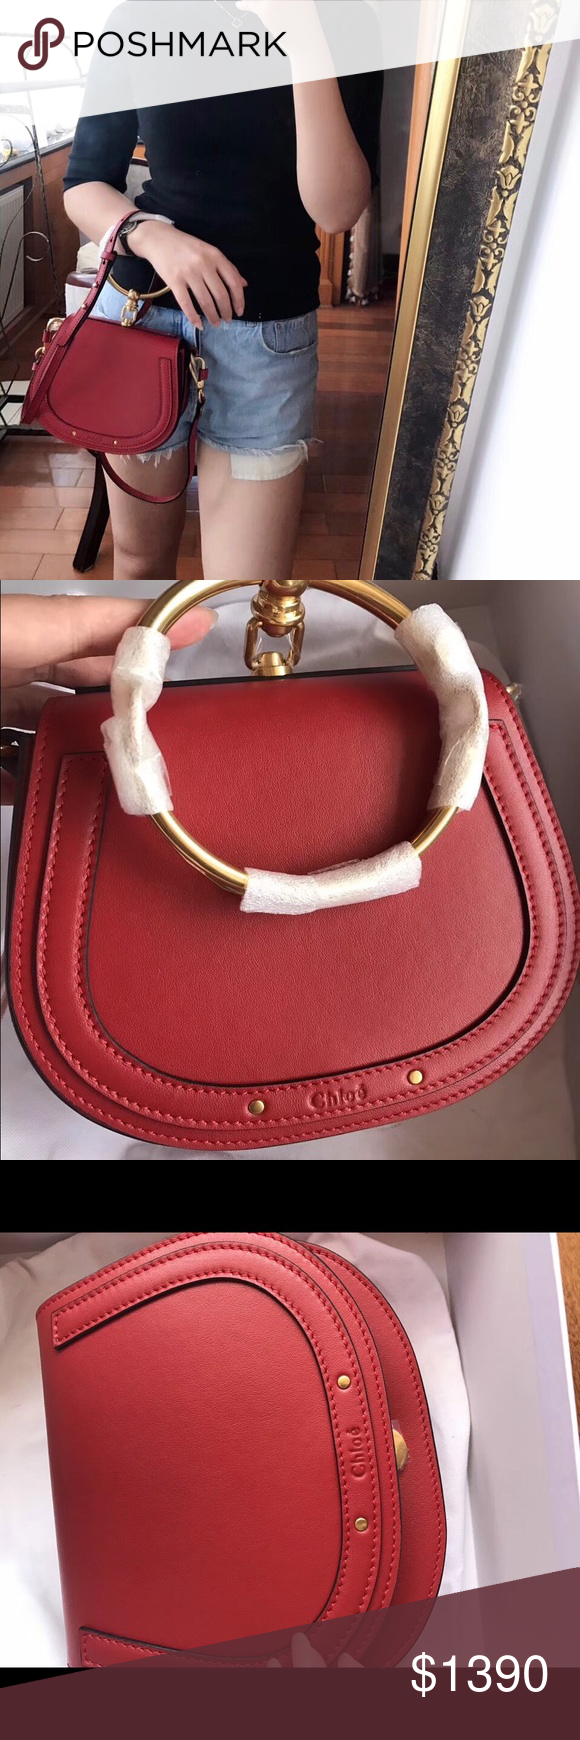 e9790907b7 Chloe Nile small red Got few new bags as gifts. Wanna sell this one in  person in NYC, cash only, no trade. Brand new, never used.